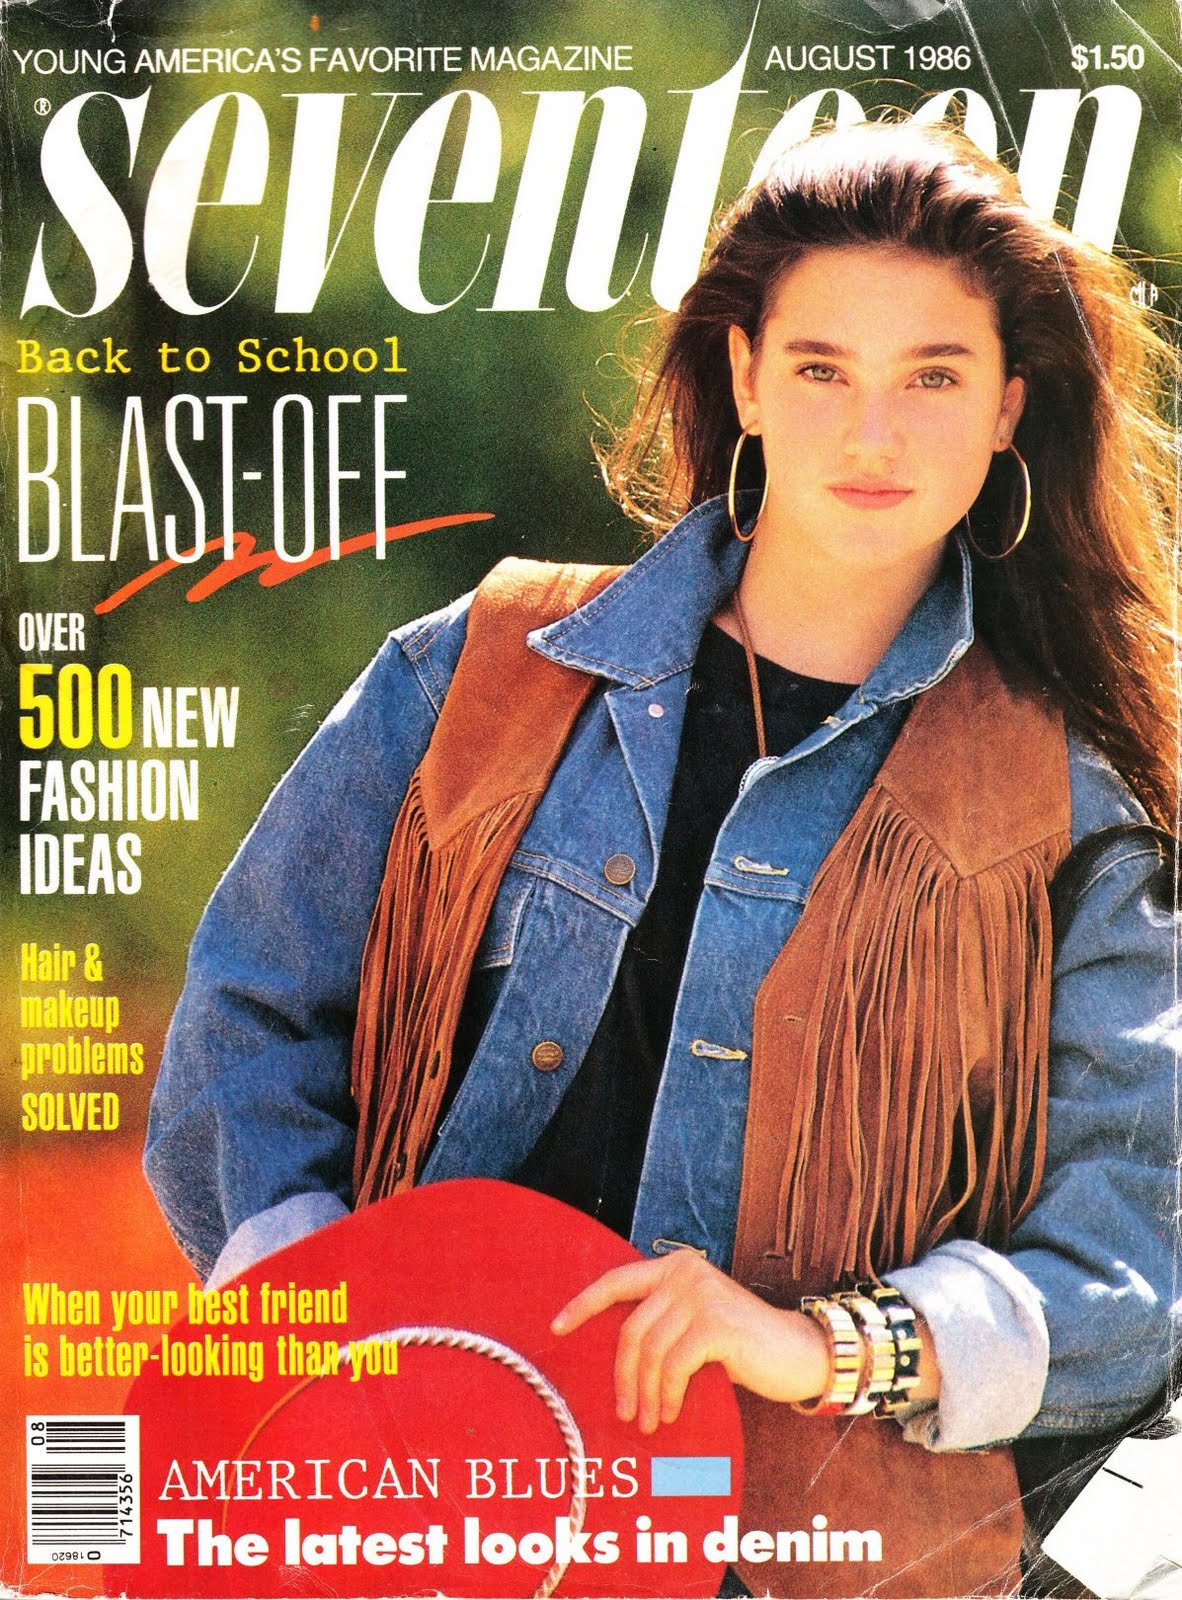 15 Amazing Teen Magazine Covers from the 70's and 80's - A ...